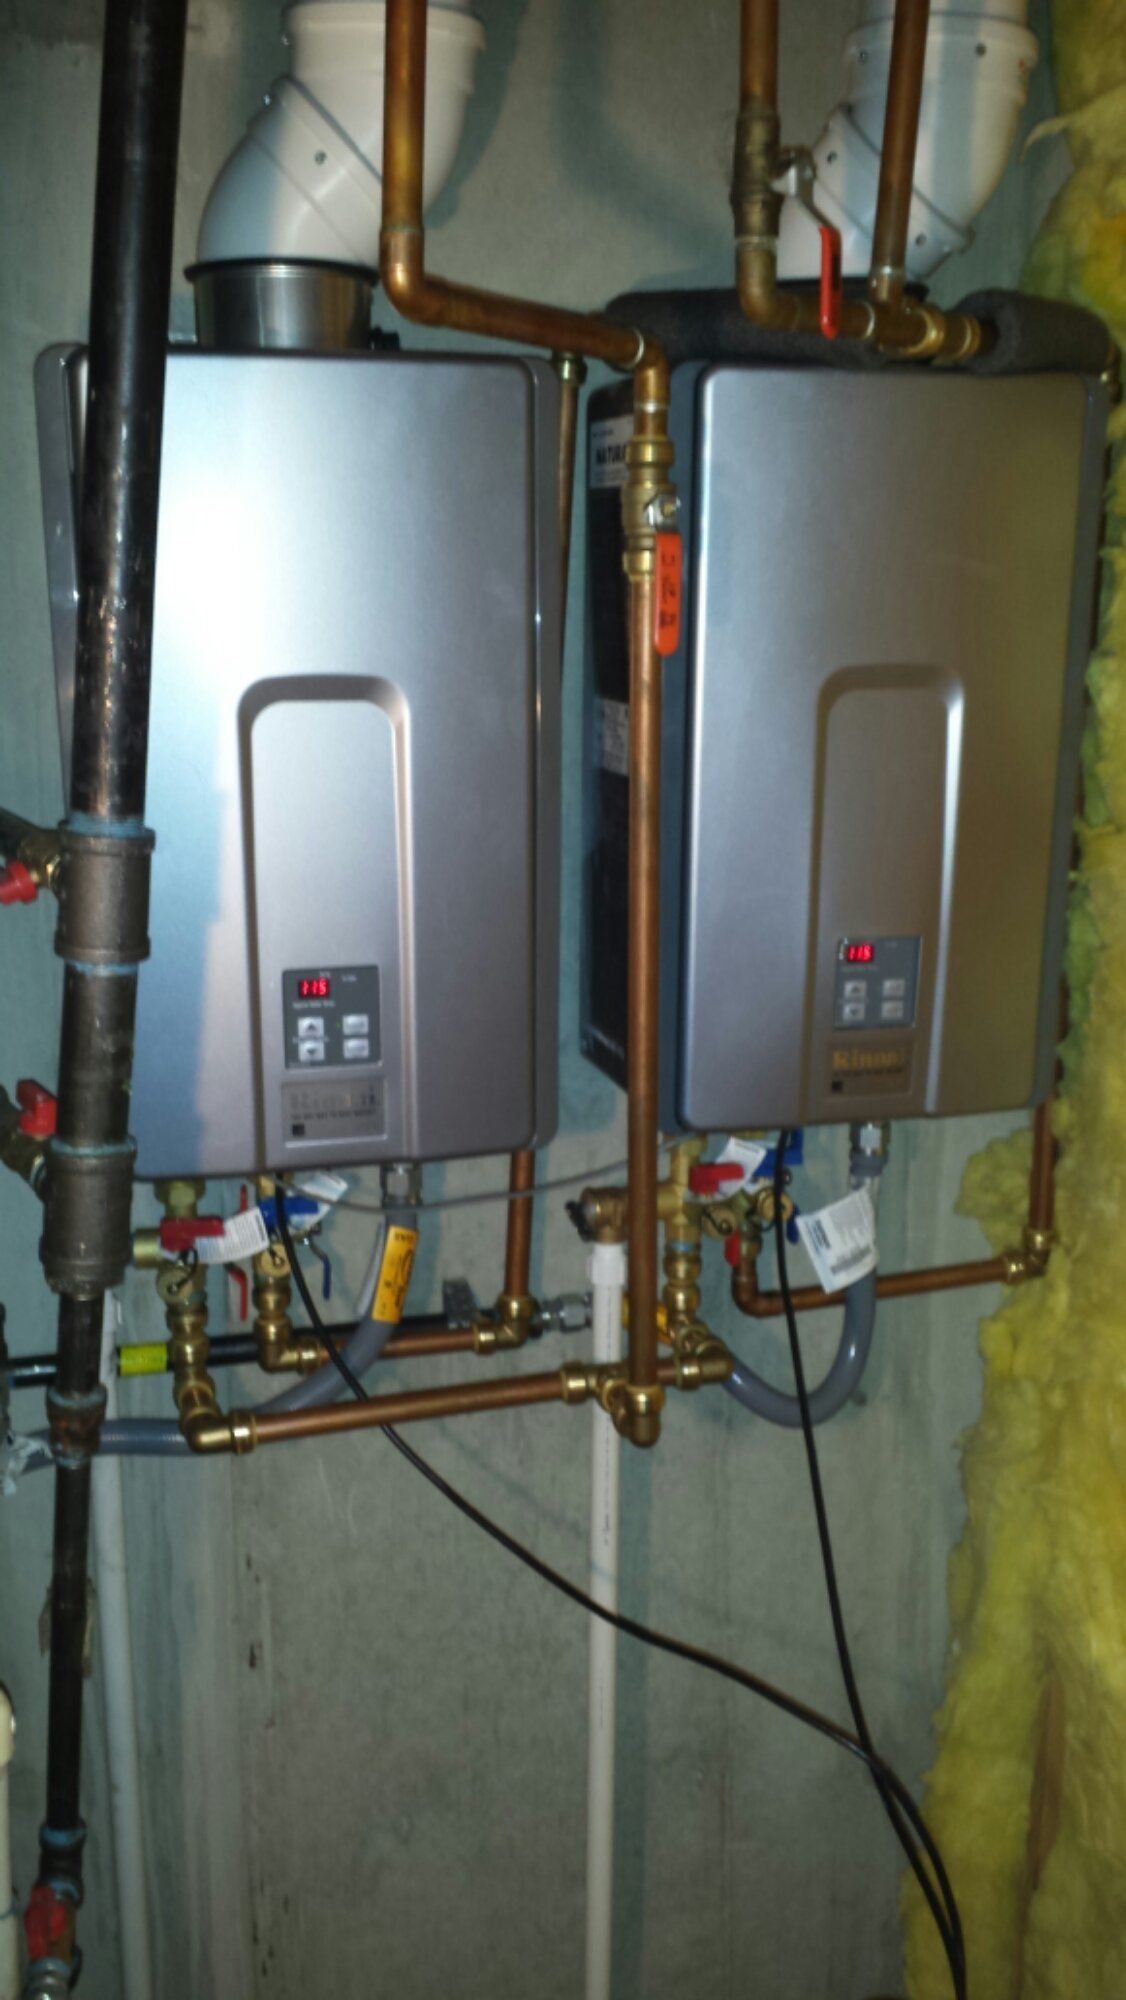 Rinnai Tankless Water Heater Installation Mechanical Insulation How To Wire